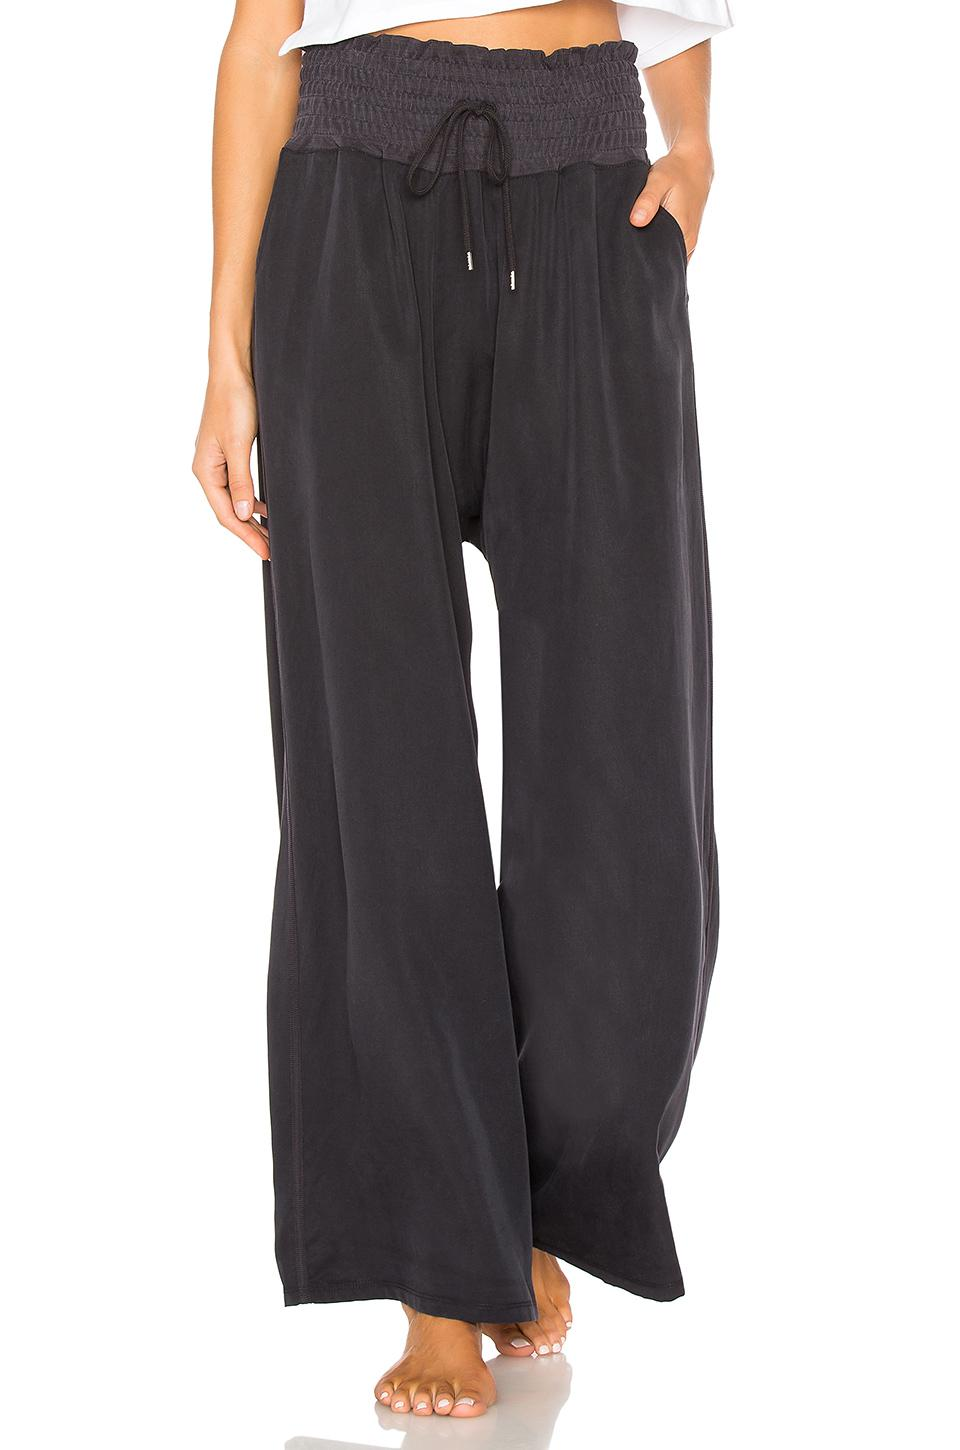 Lyst - Free People Movement Mia Pant in Black a74391fec